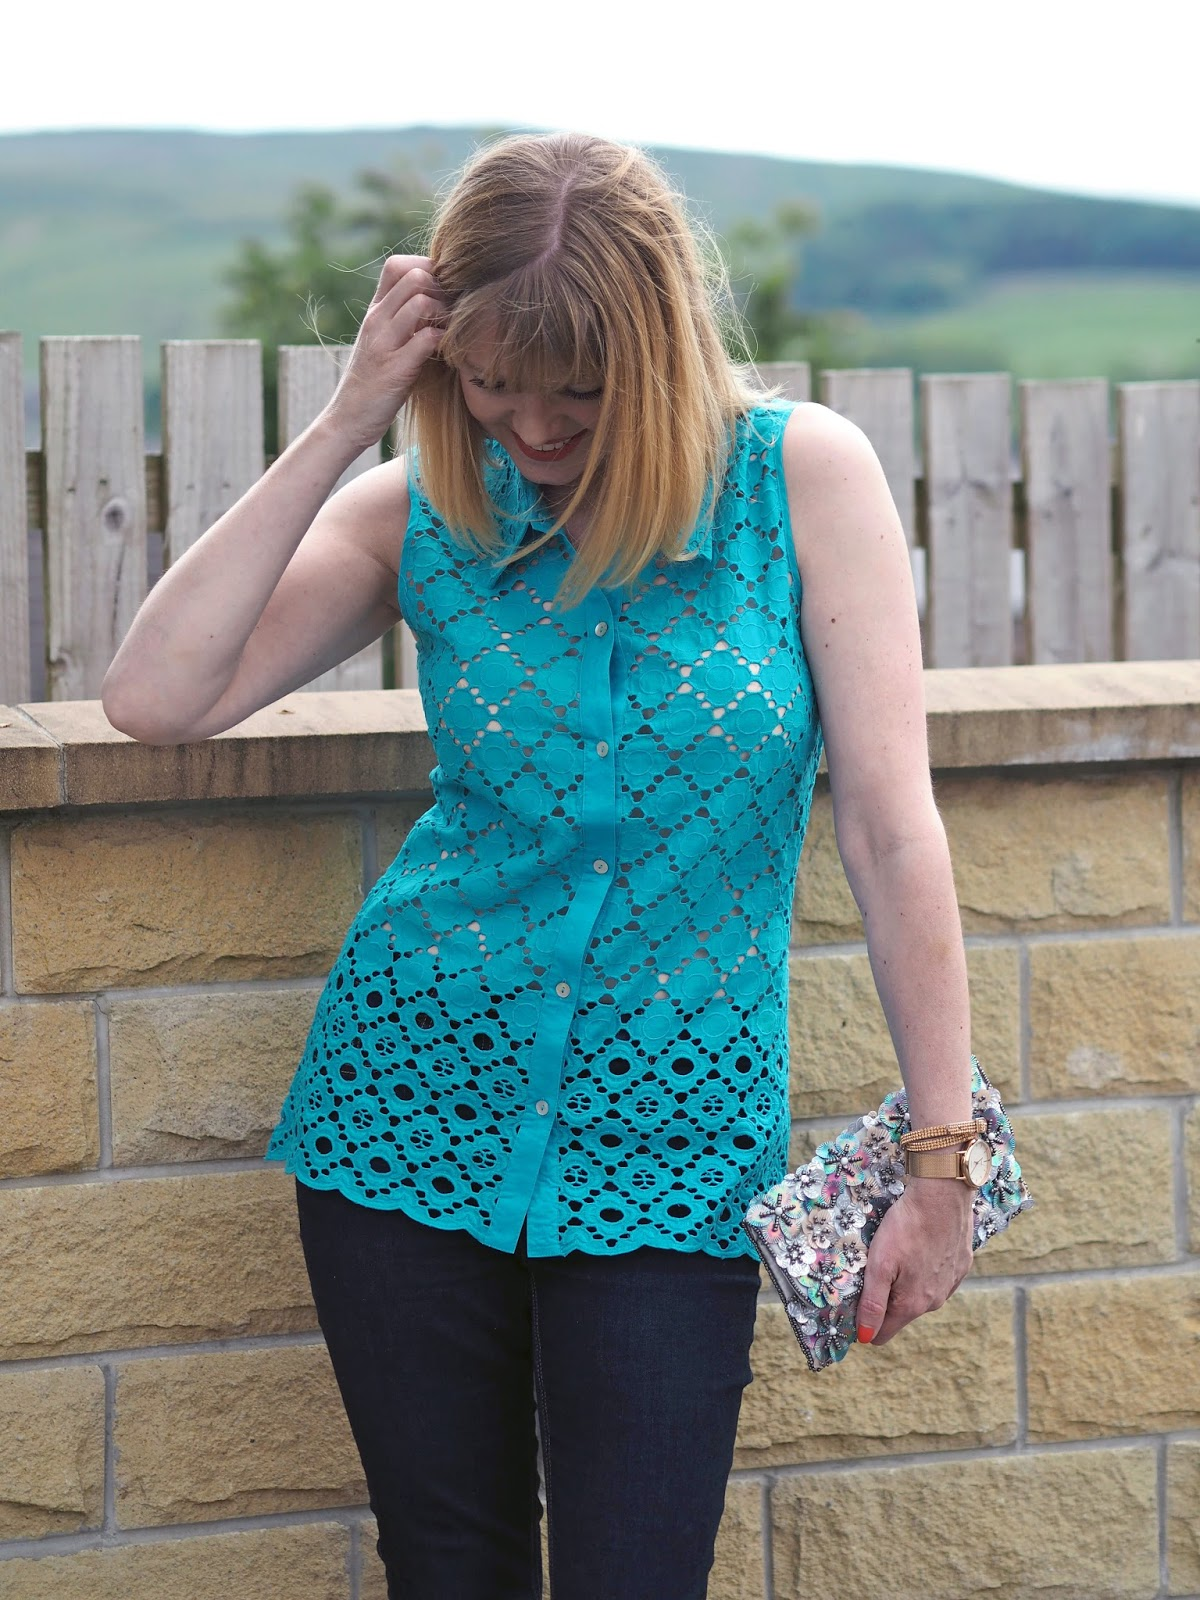 Turquoise broderie anglais top with skinny jeans and floral clutch